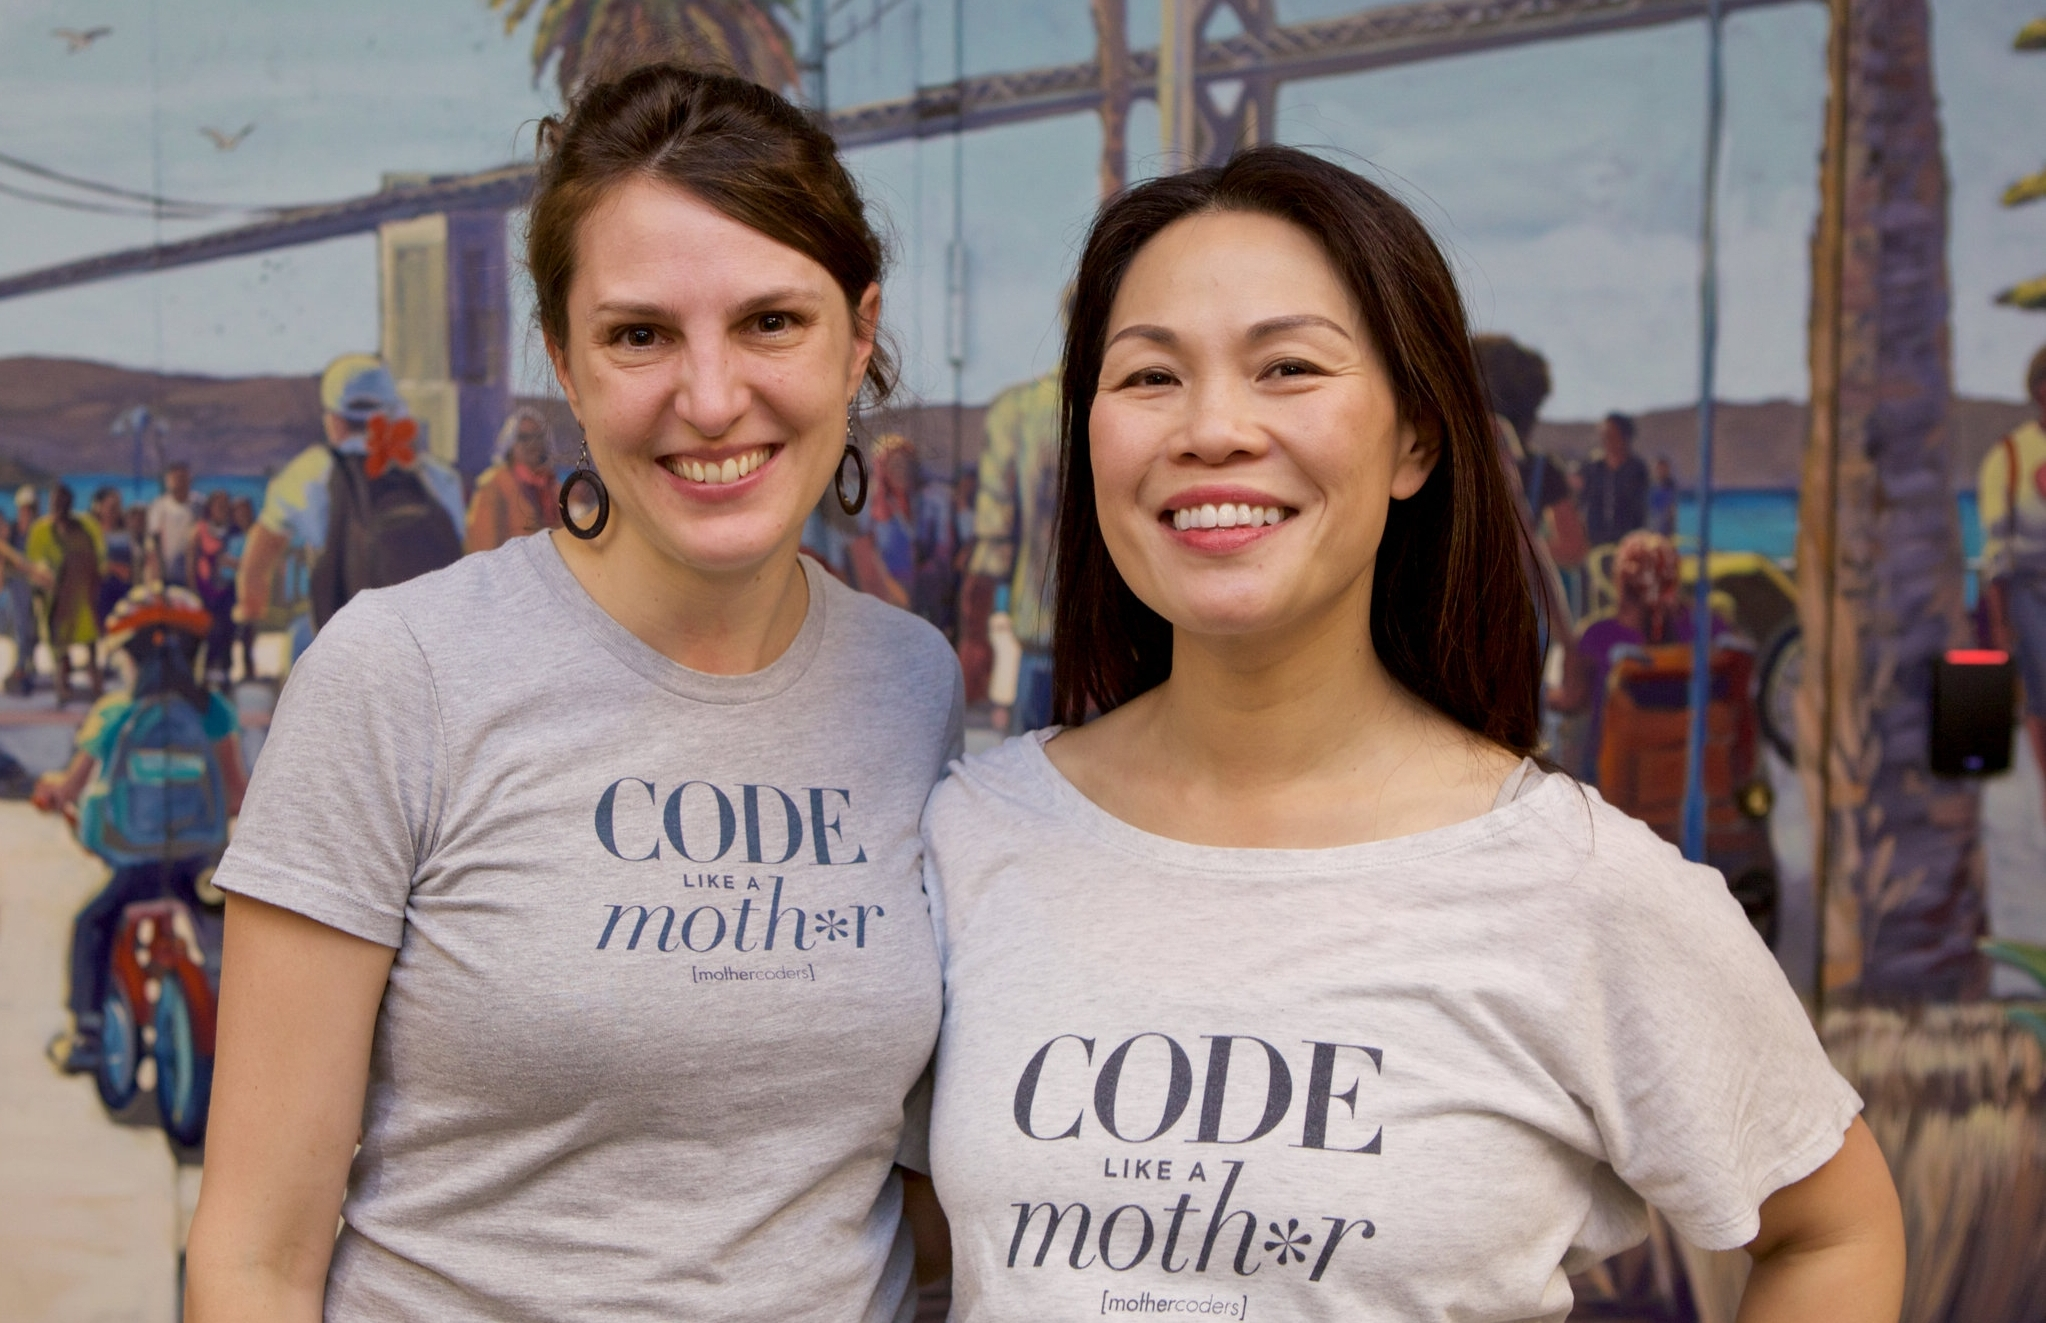 #MomsInTech Career Road-mapping Workshop - Date/Time: Tuesday, Nov 14, 2017, 5:30pm-8:00pmLocation: Google Community Space,188 The Embarcadero, San Francisco, CA 94105